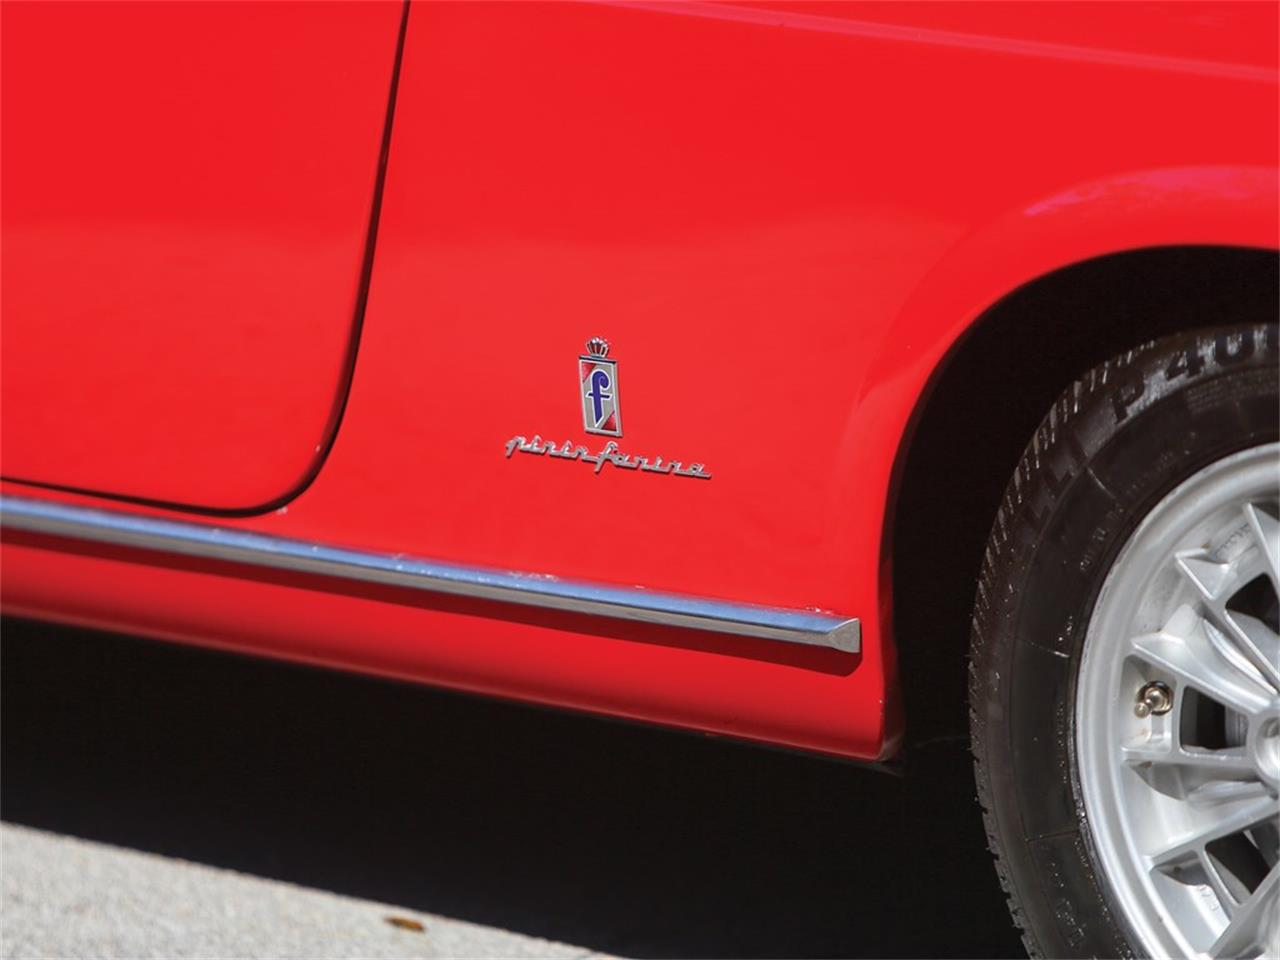 1965 Fiat Abarth 1500 for sale in Fort Lauderdale, FL – photo 8